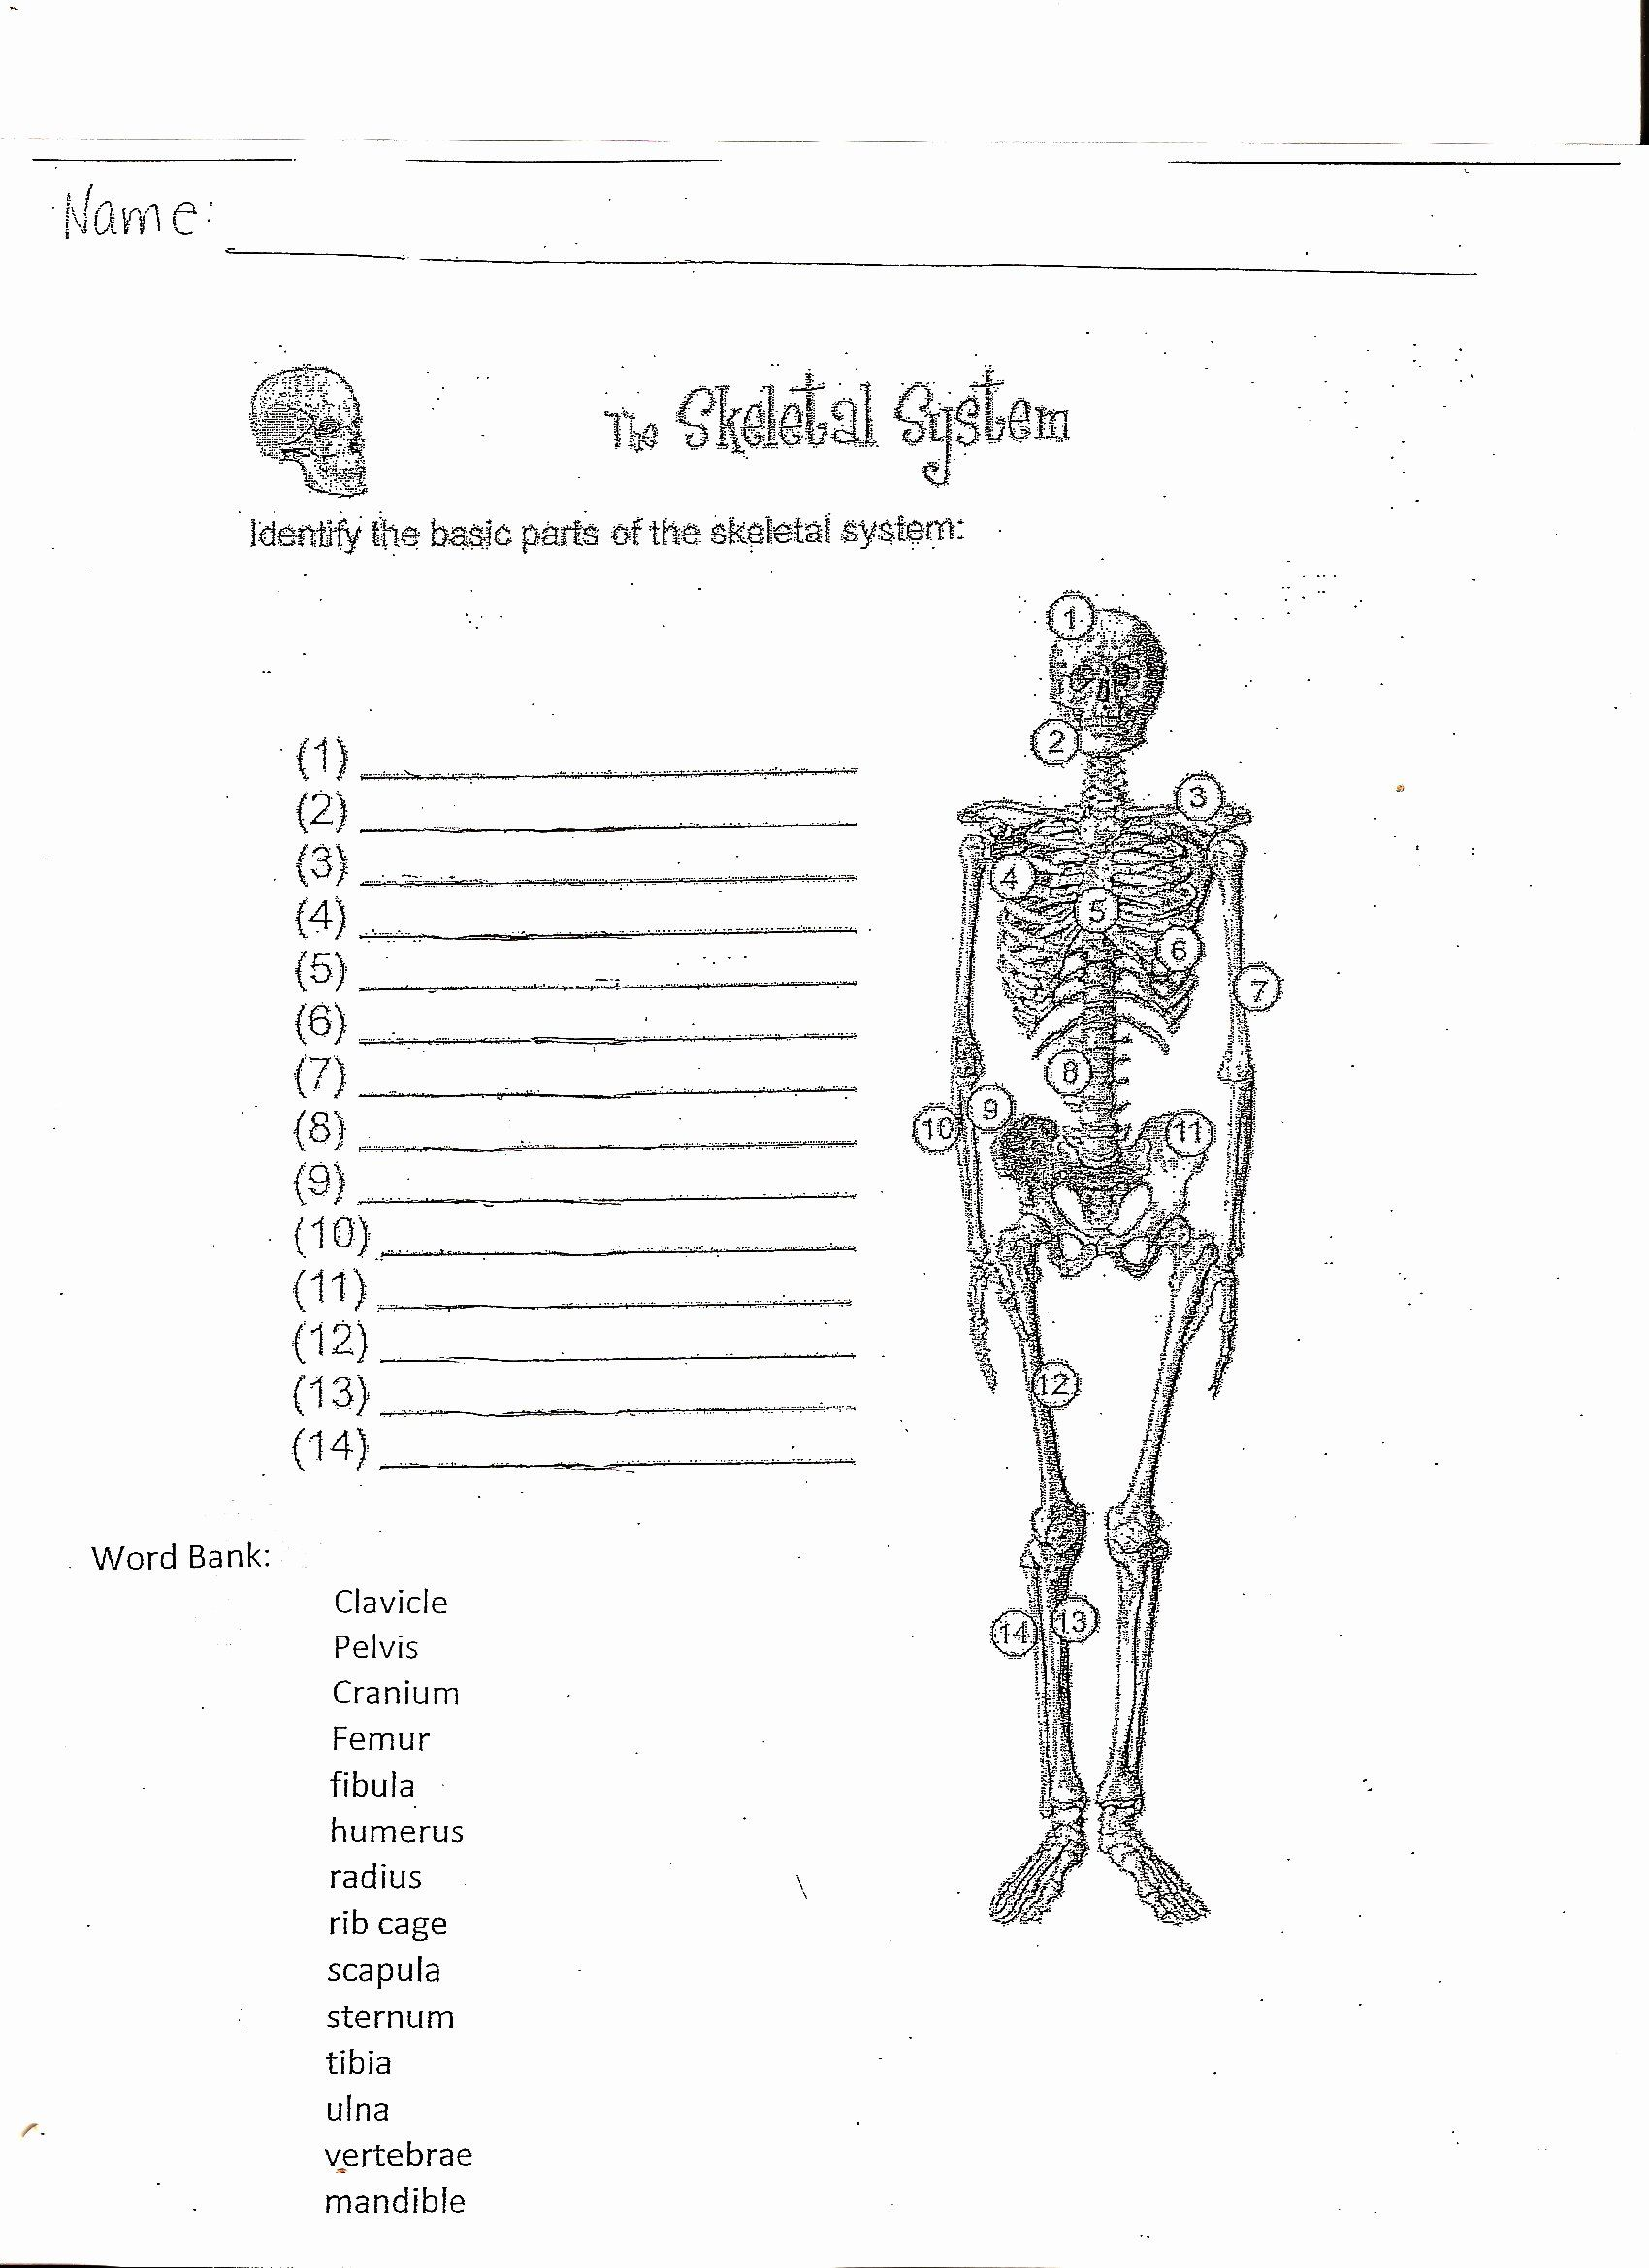 Skeletal System Worksheet New Skeletal System